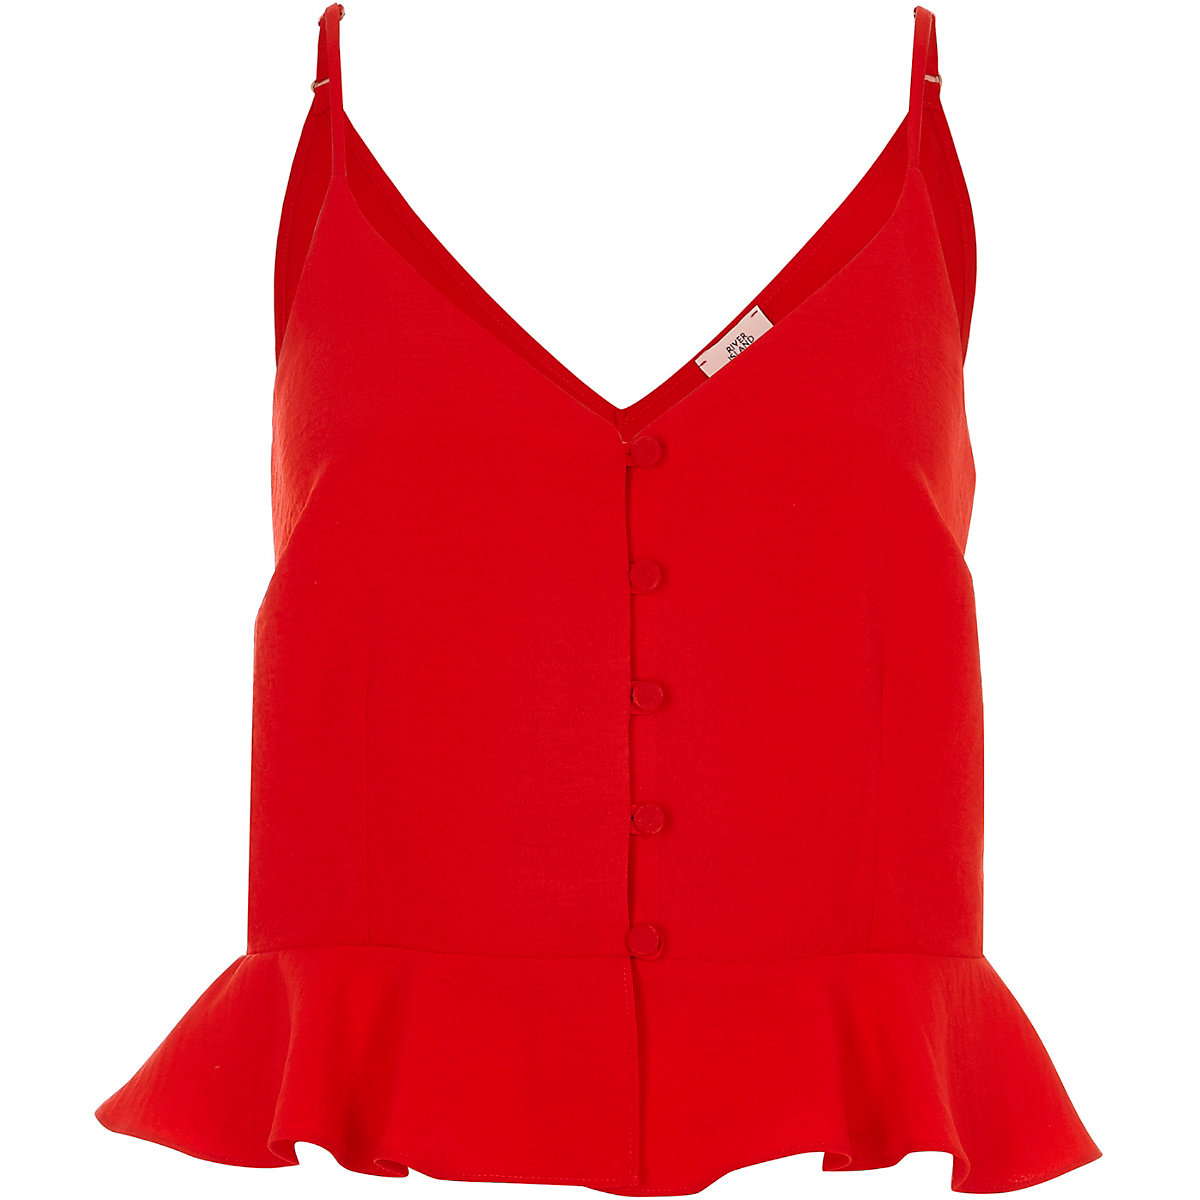 4e92bb8395ea44 Bright red frill hem cropped cami top - Cami   Sleeveless Tops - Tops -  women